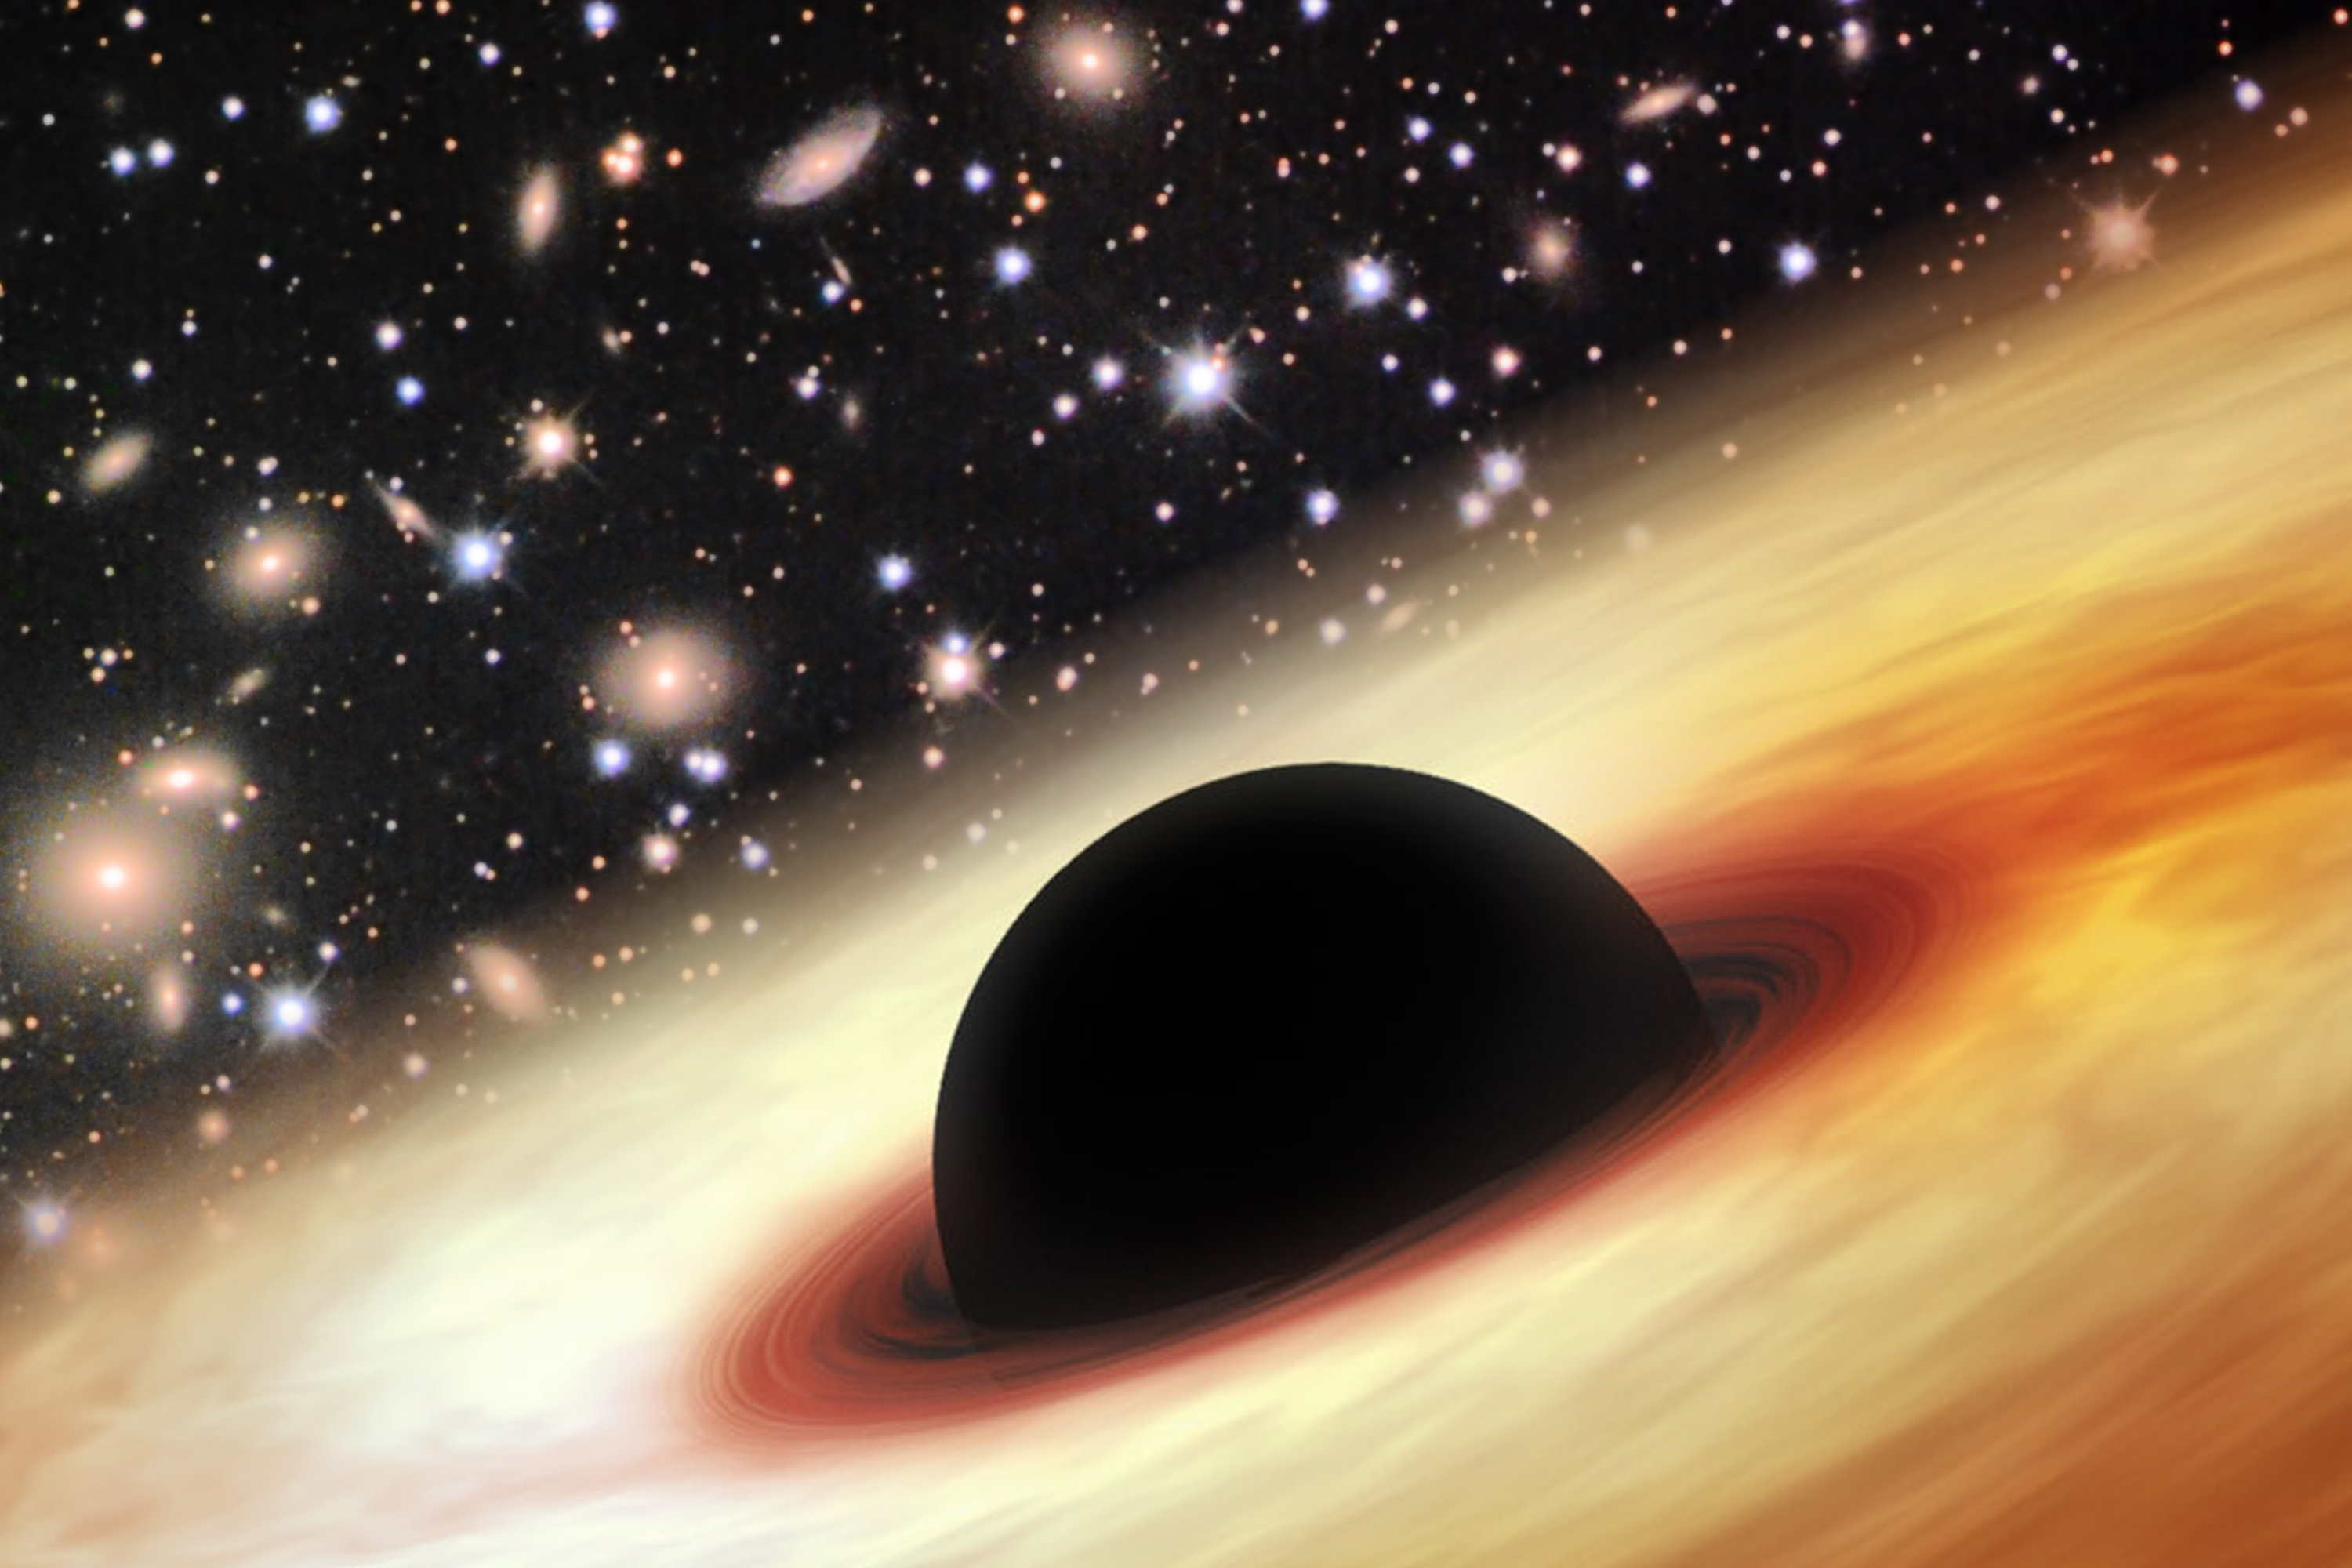 An artist's impression of a quasar with a supermassive black hole in the distant universe.